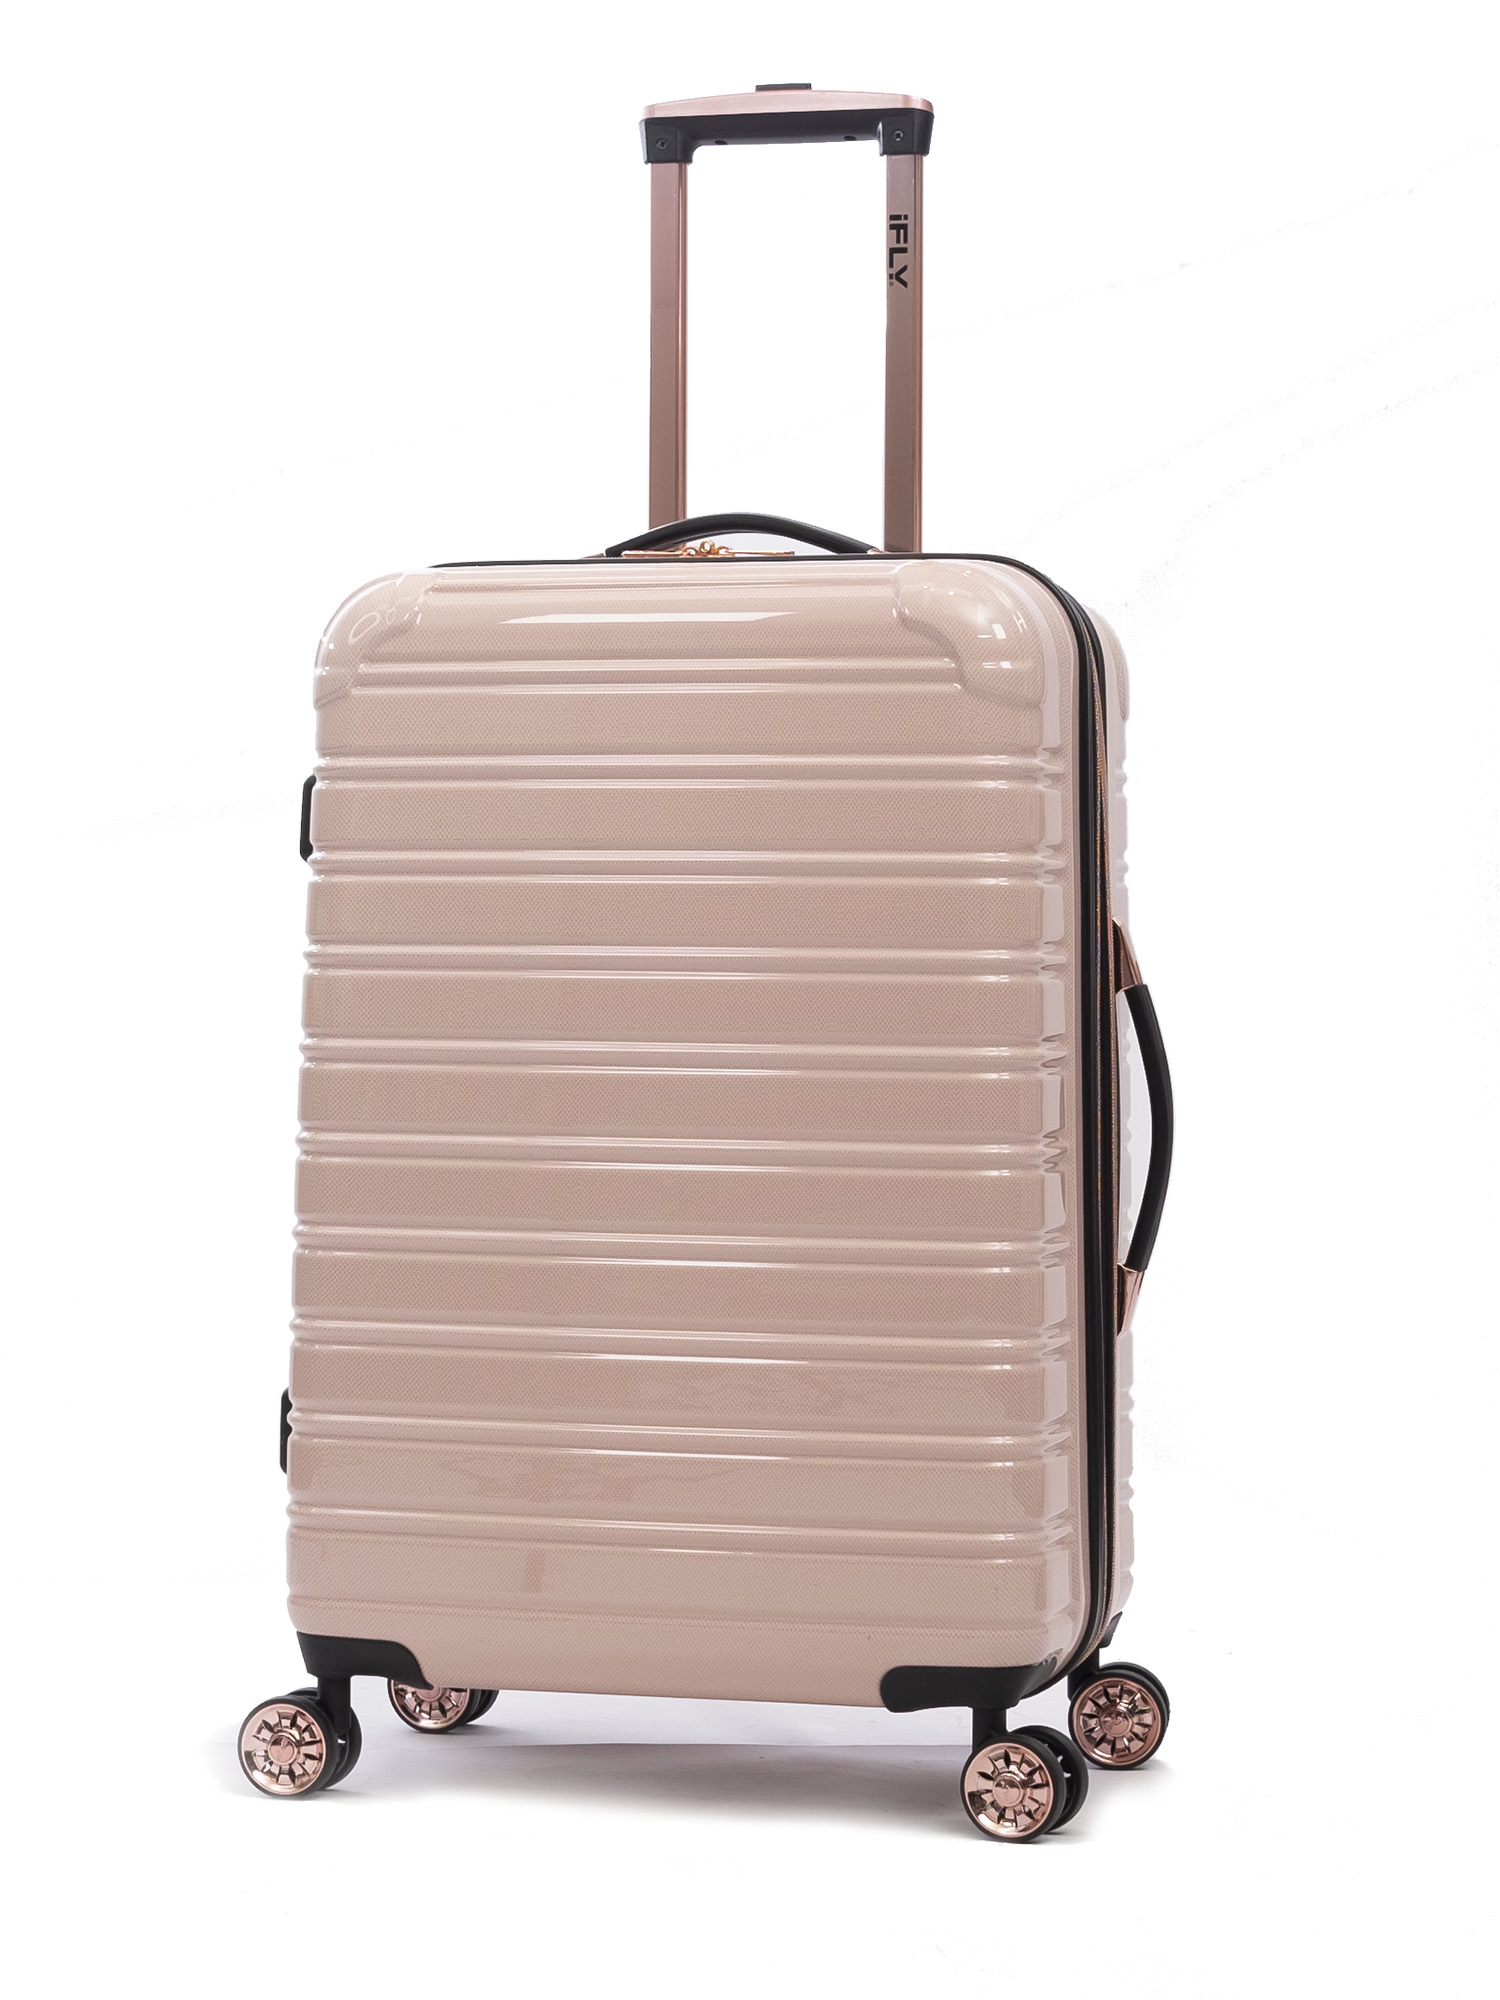 "iFLY Hardside Fibertech Luggage 24"" Checked Luggage"